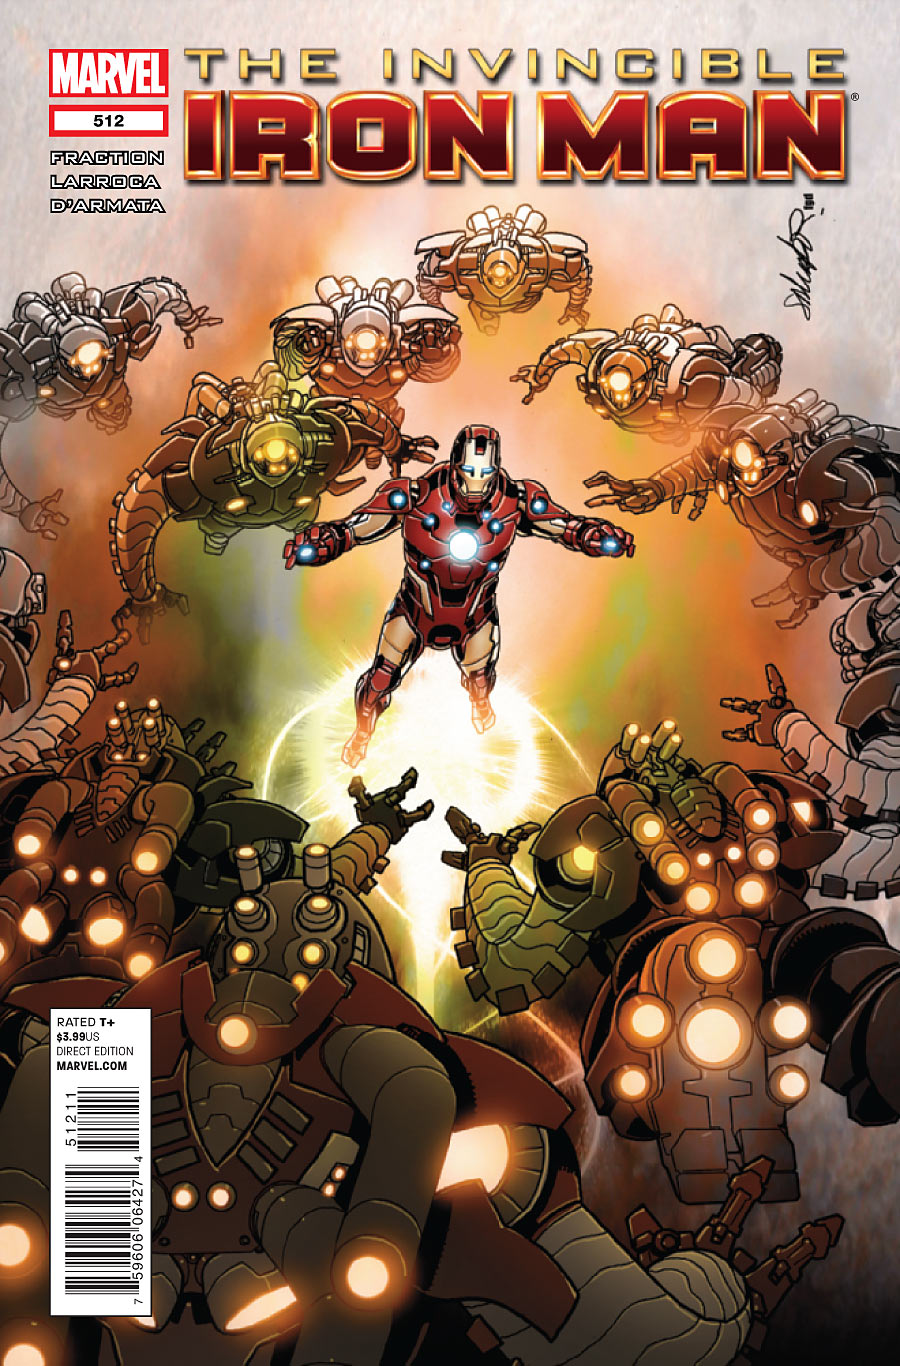 Invincible Iron Man Vol 1 512